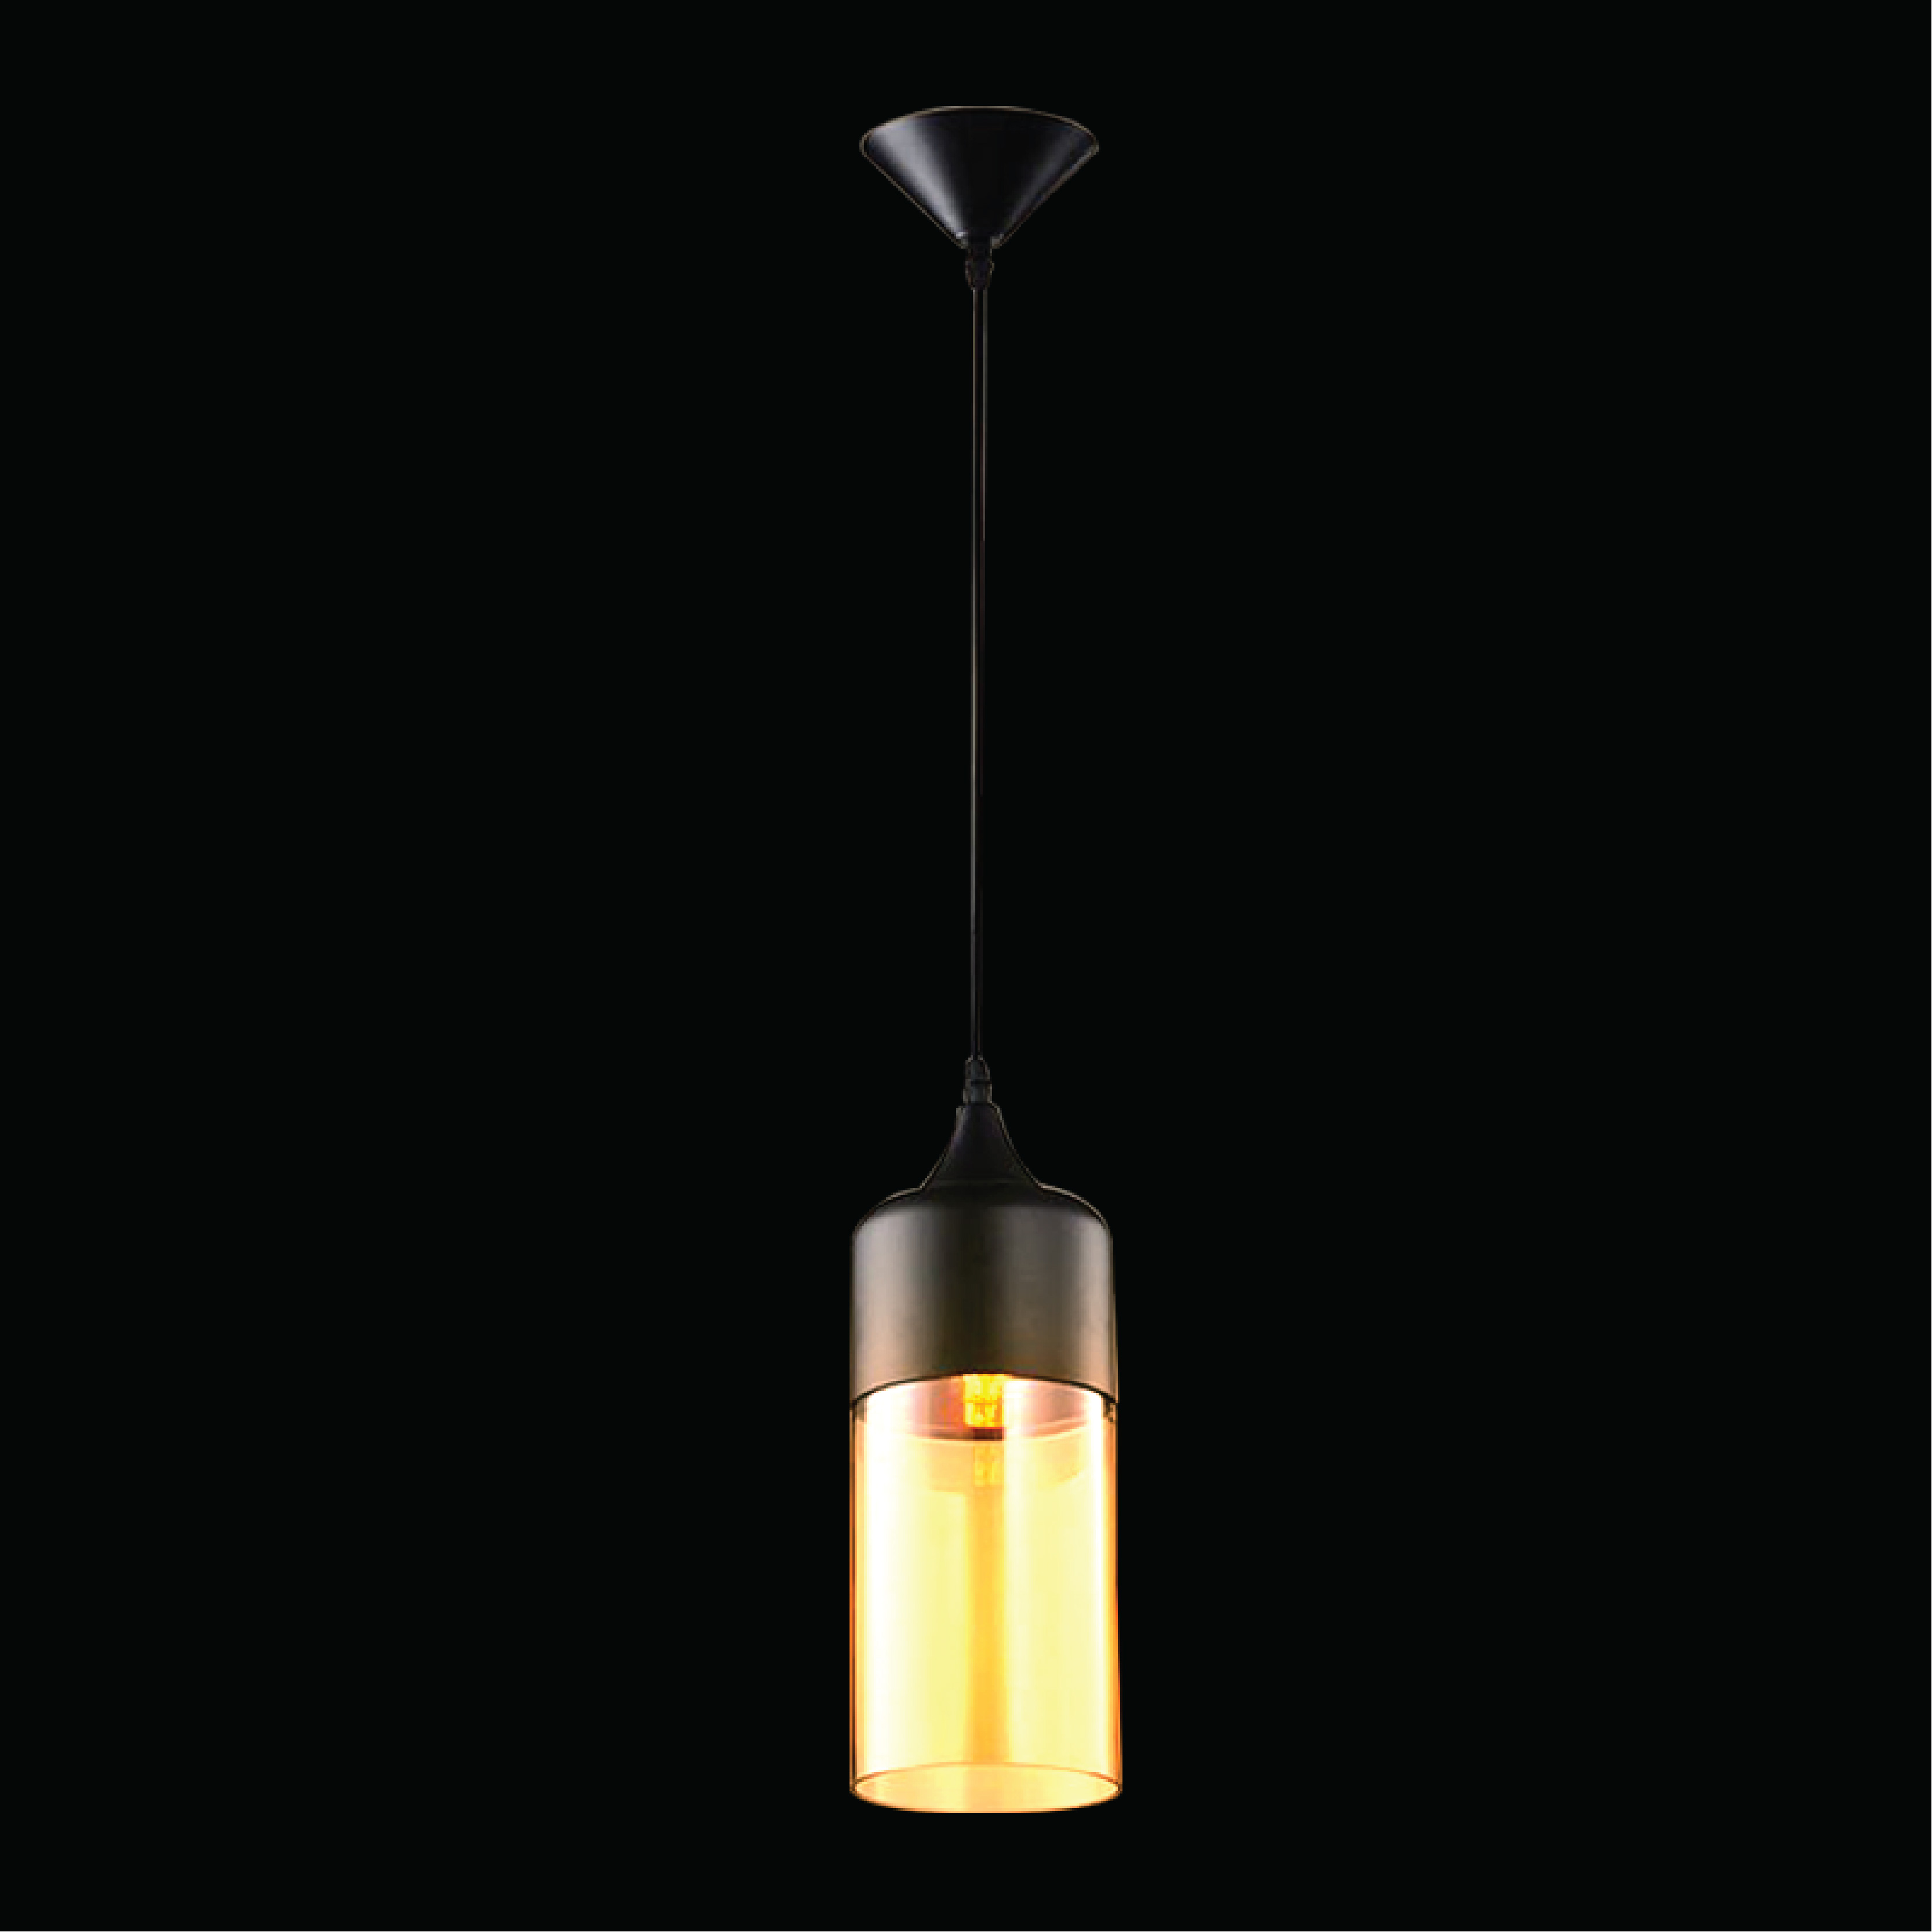 HANGING LIGHT 6297A